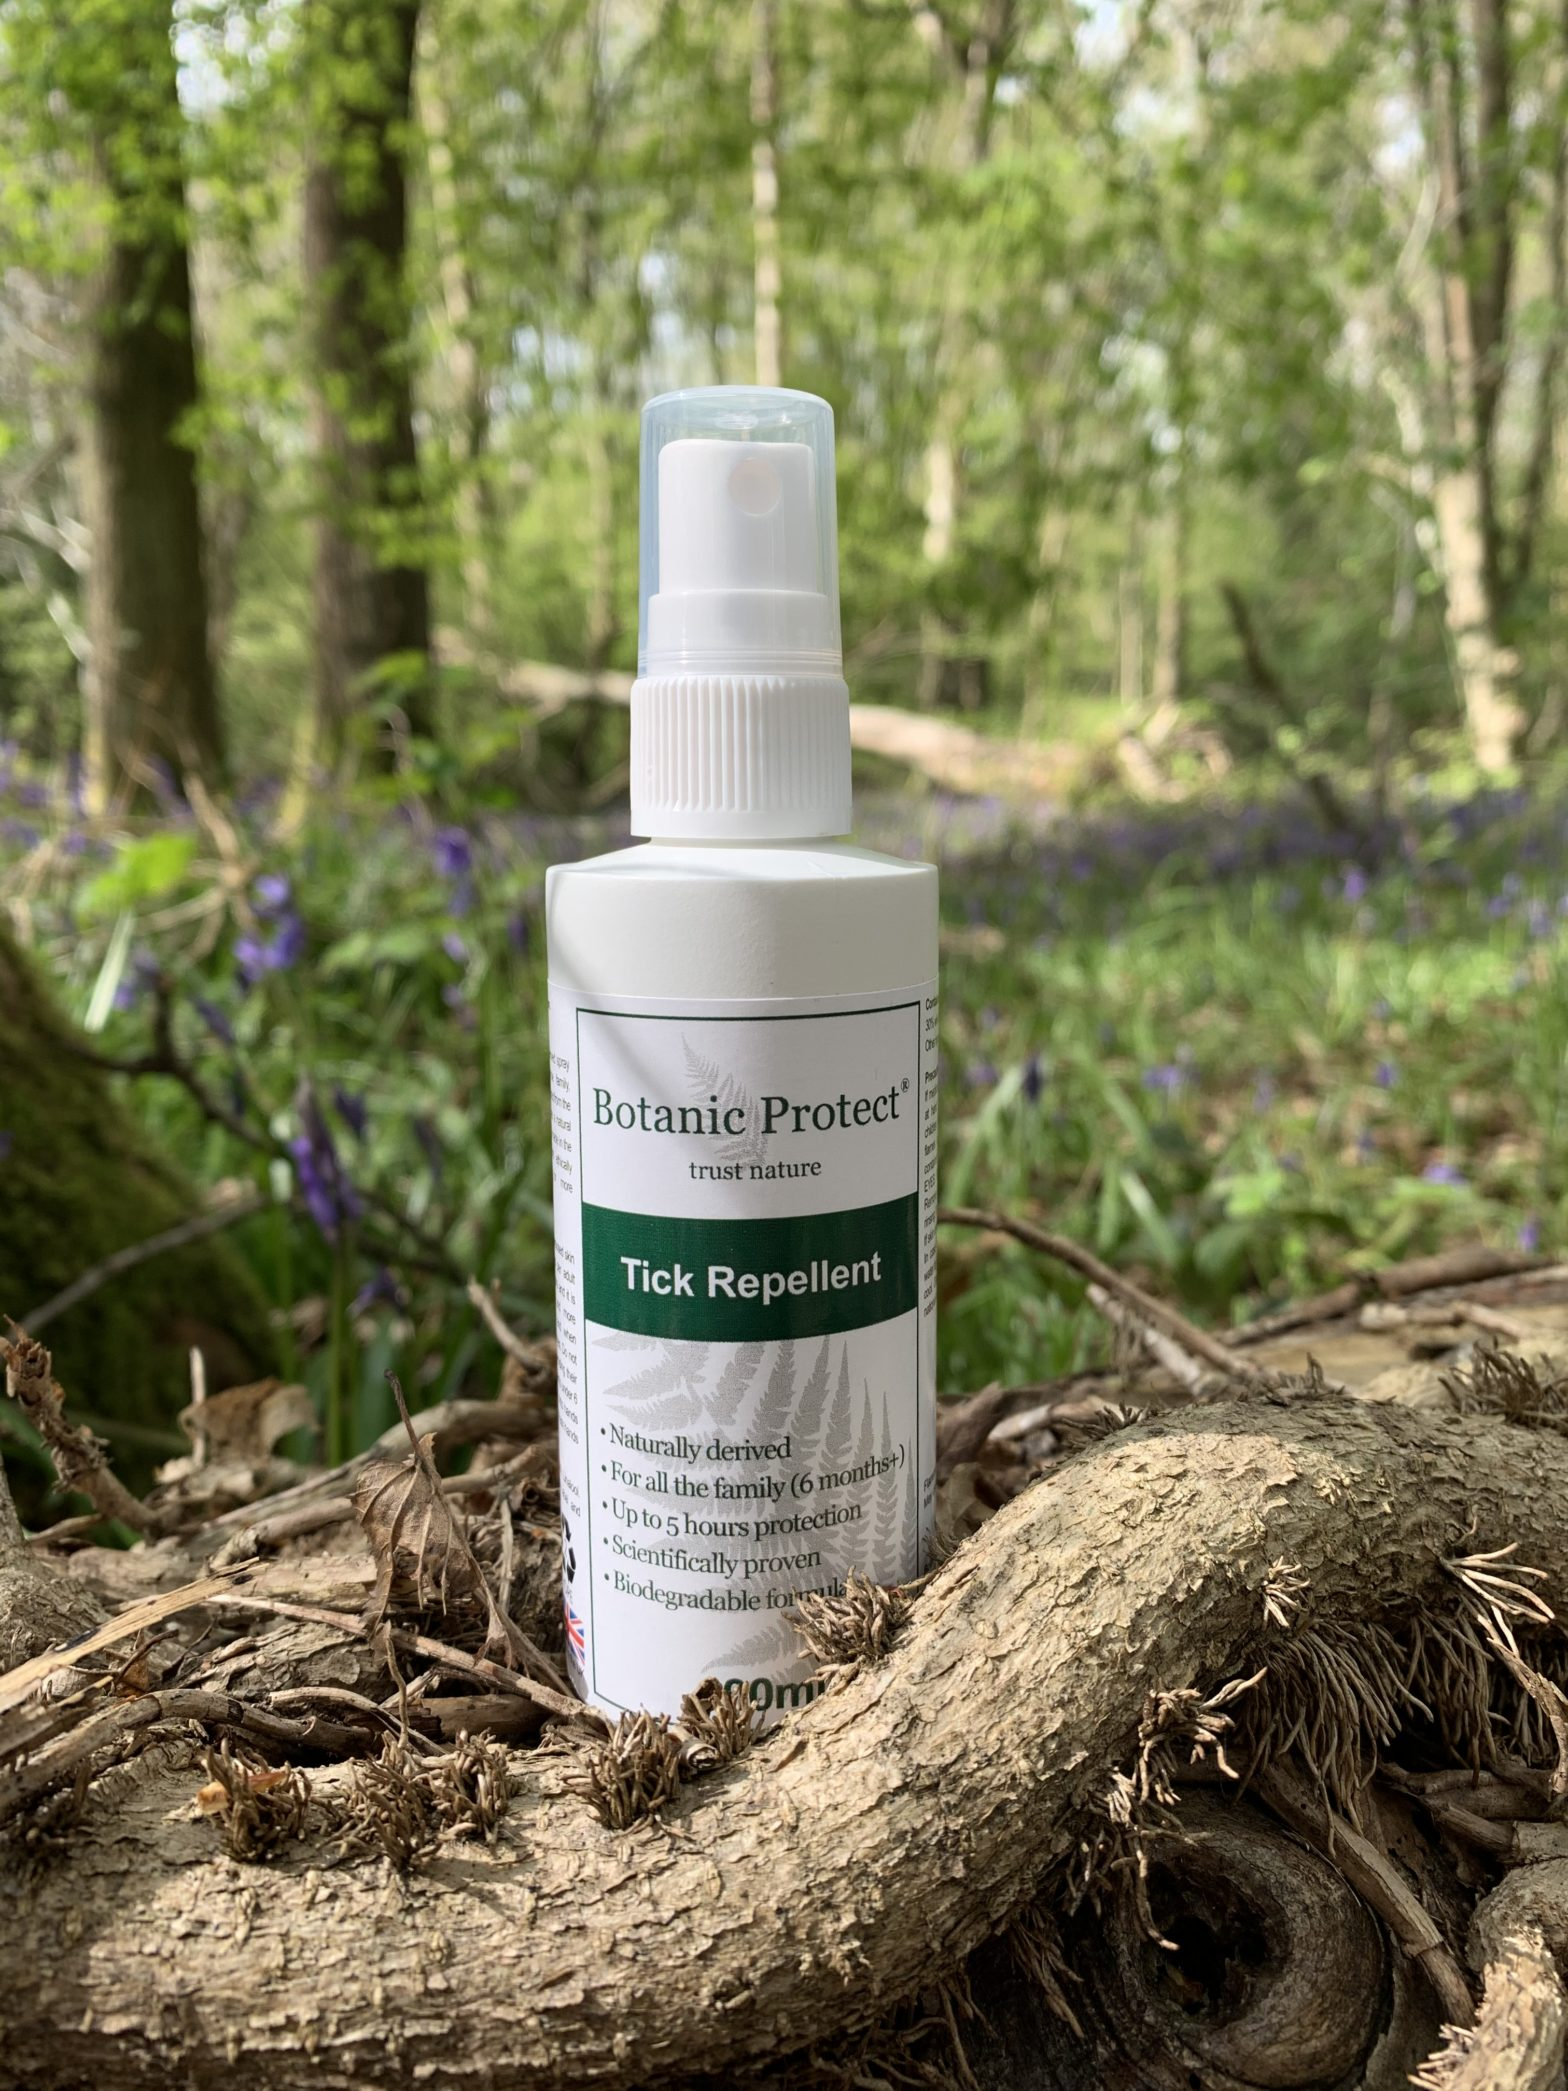 A photo showing the need to use Botanic Protect tick repellent when in the bluebell woods